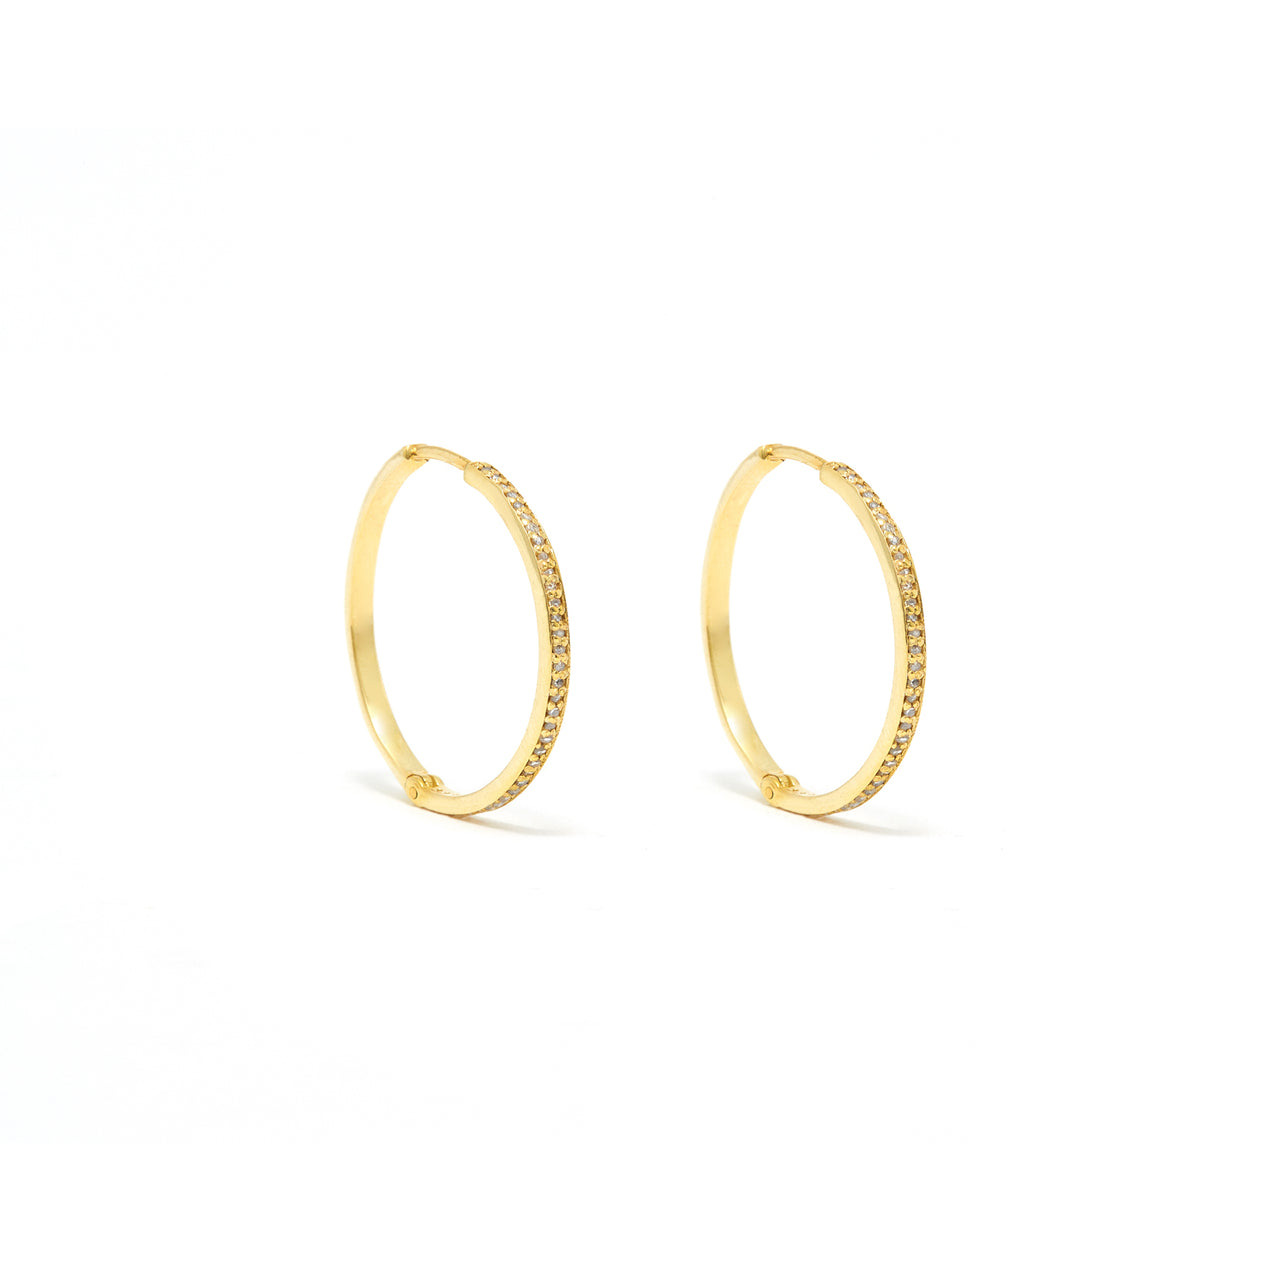 Glitter Hoop 22 Diamond Earrings.-Earrings-Jaipur Atelier